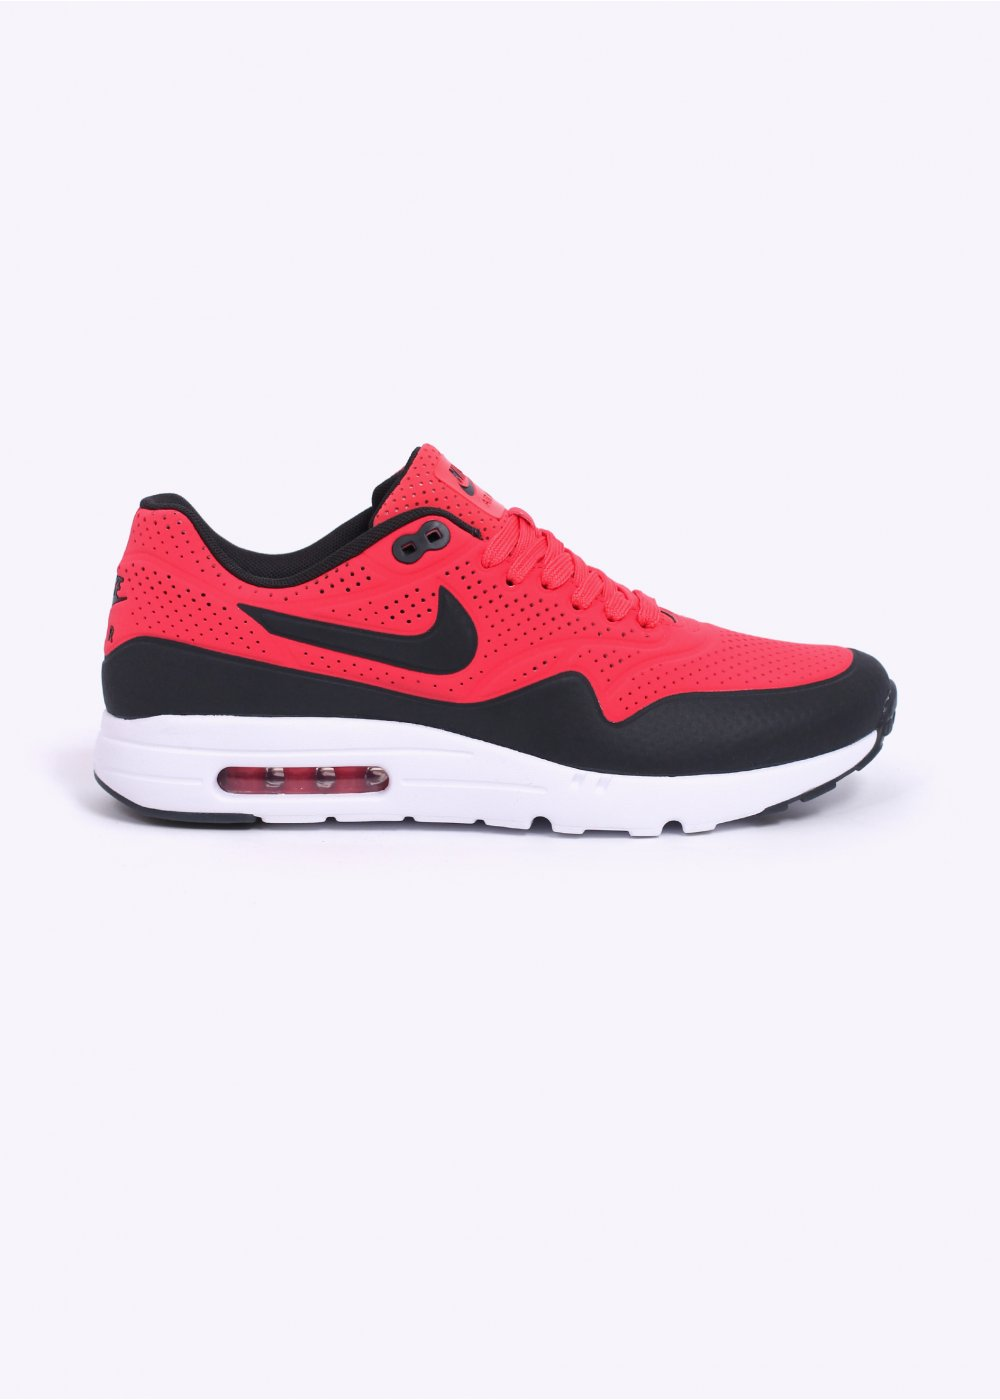 cc1b9899cffc Nike Air Max 1 Ultra Moire Trainers - Rio Red   Anthracite